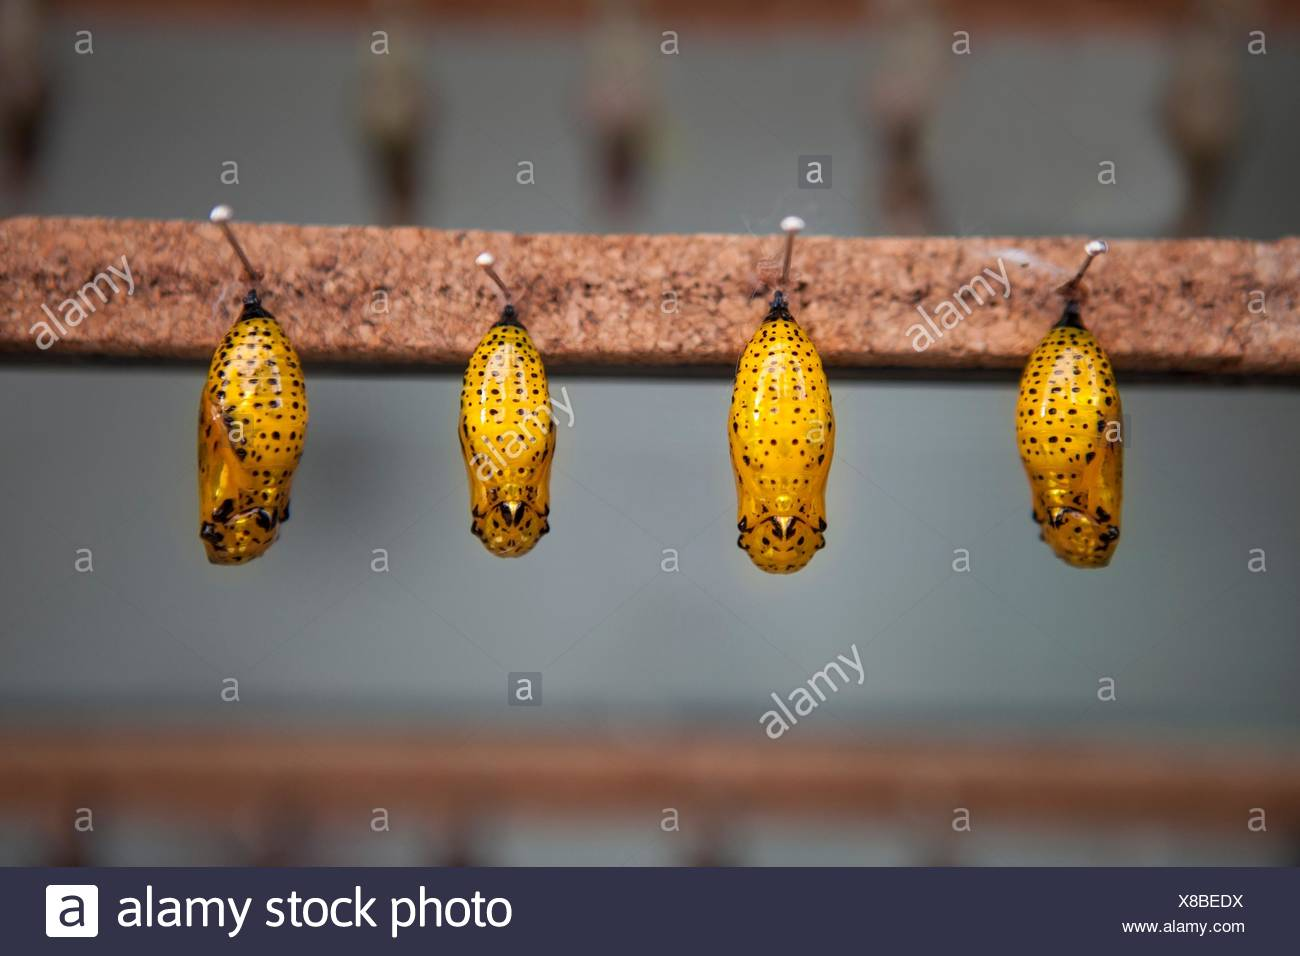 Four yellow pupas is hanging from pins. - Stock Image